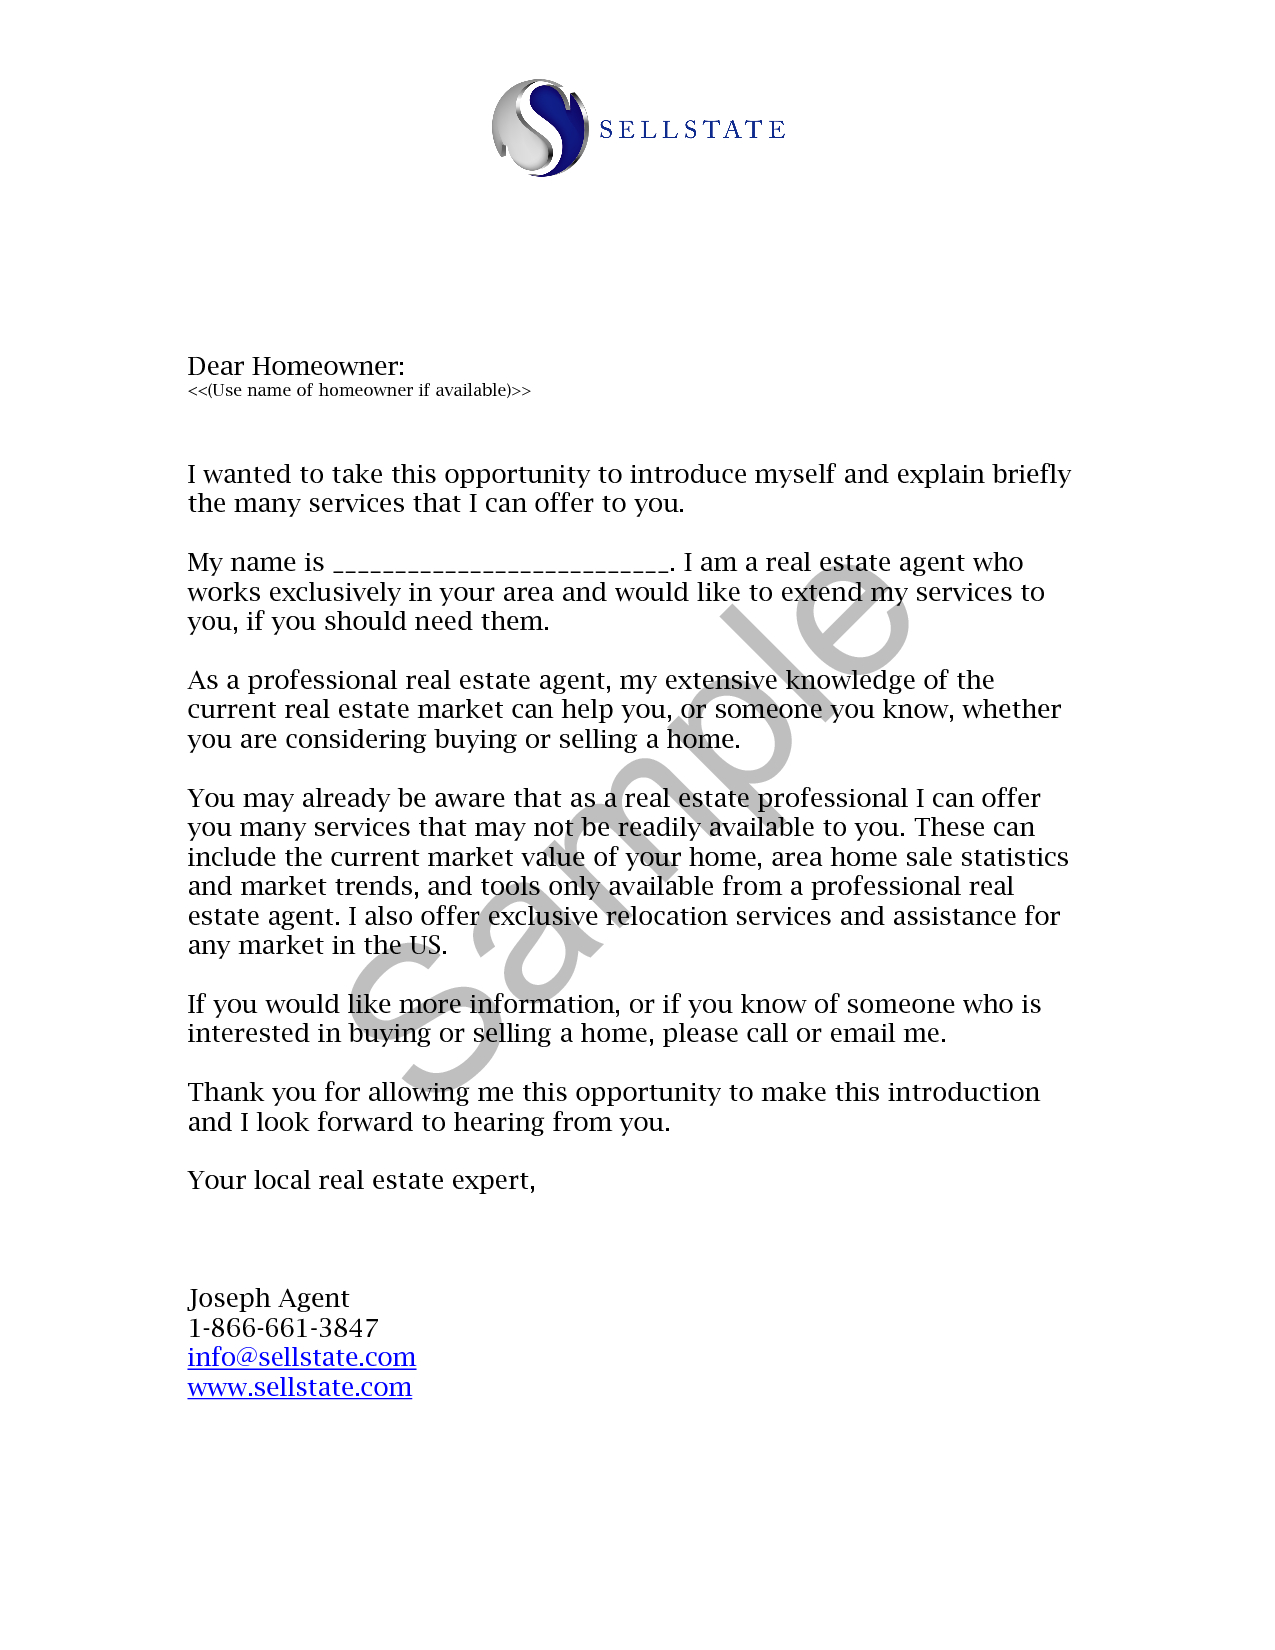 Fsbo Letter Template - Real Estate Letters Of Introduction Introduction Letter Real Estate